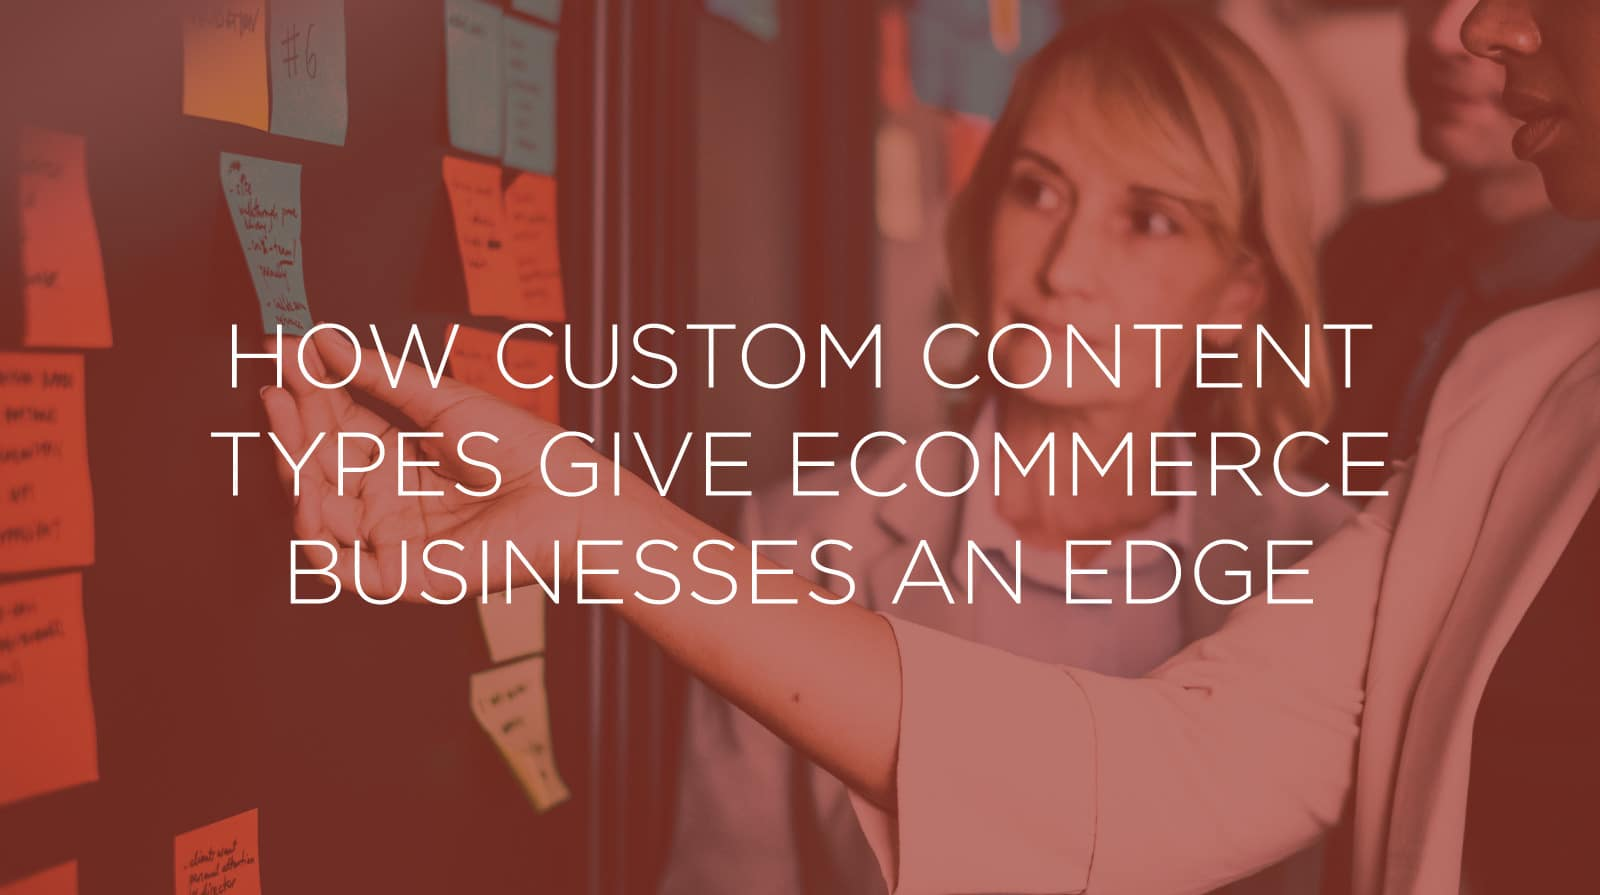 How Custom Content Types Give Ecommerce Businesses an Edge